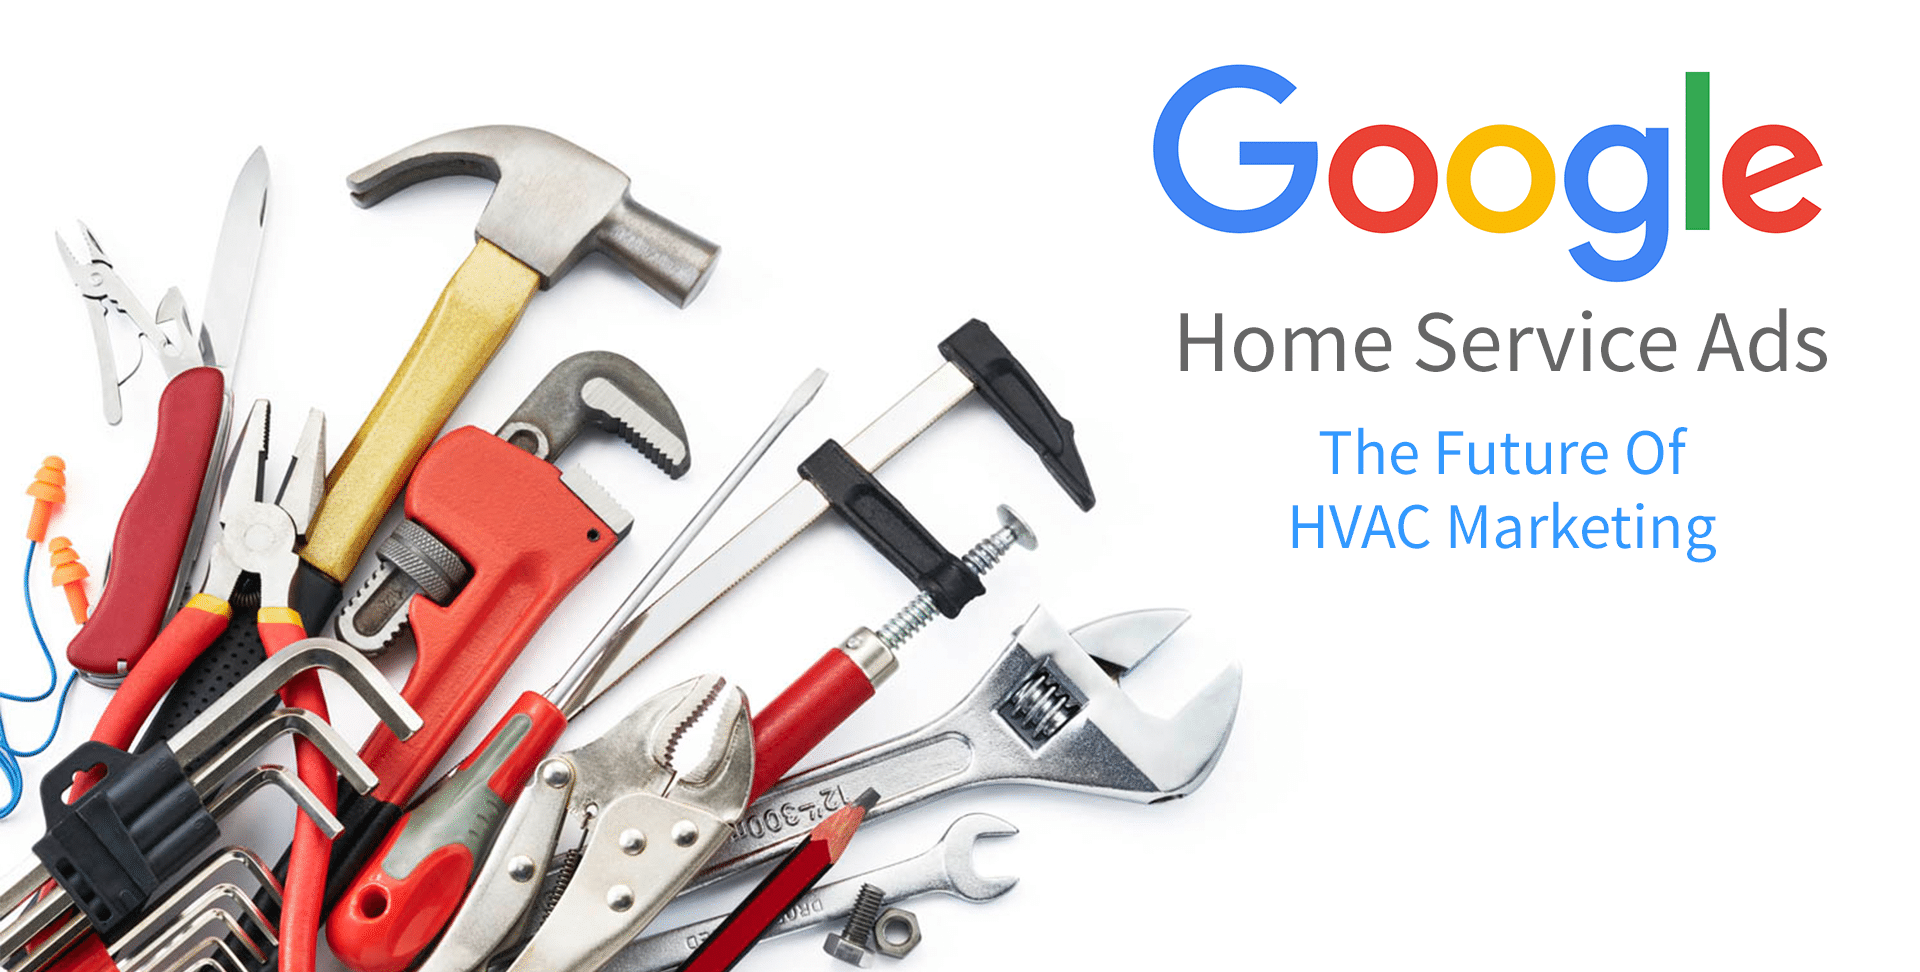 Google Home Service Ads – The Future Of HVAC Marketing